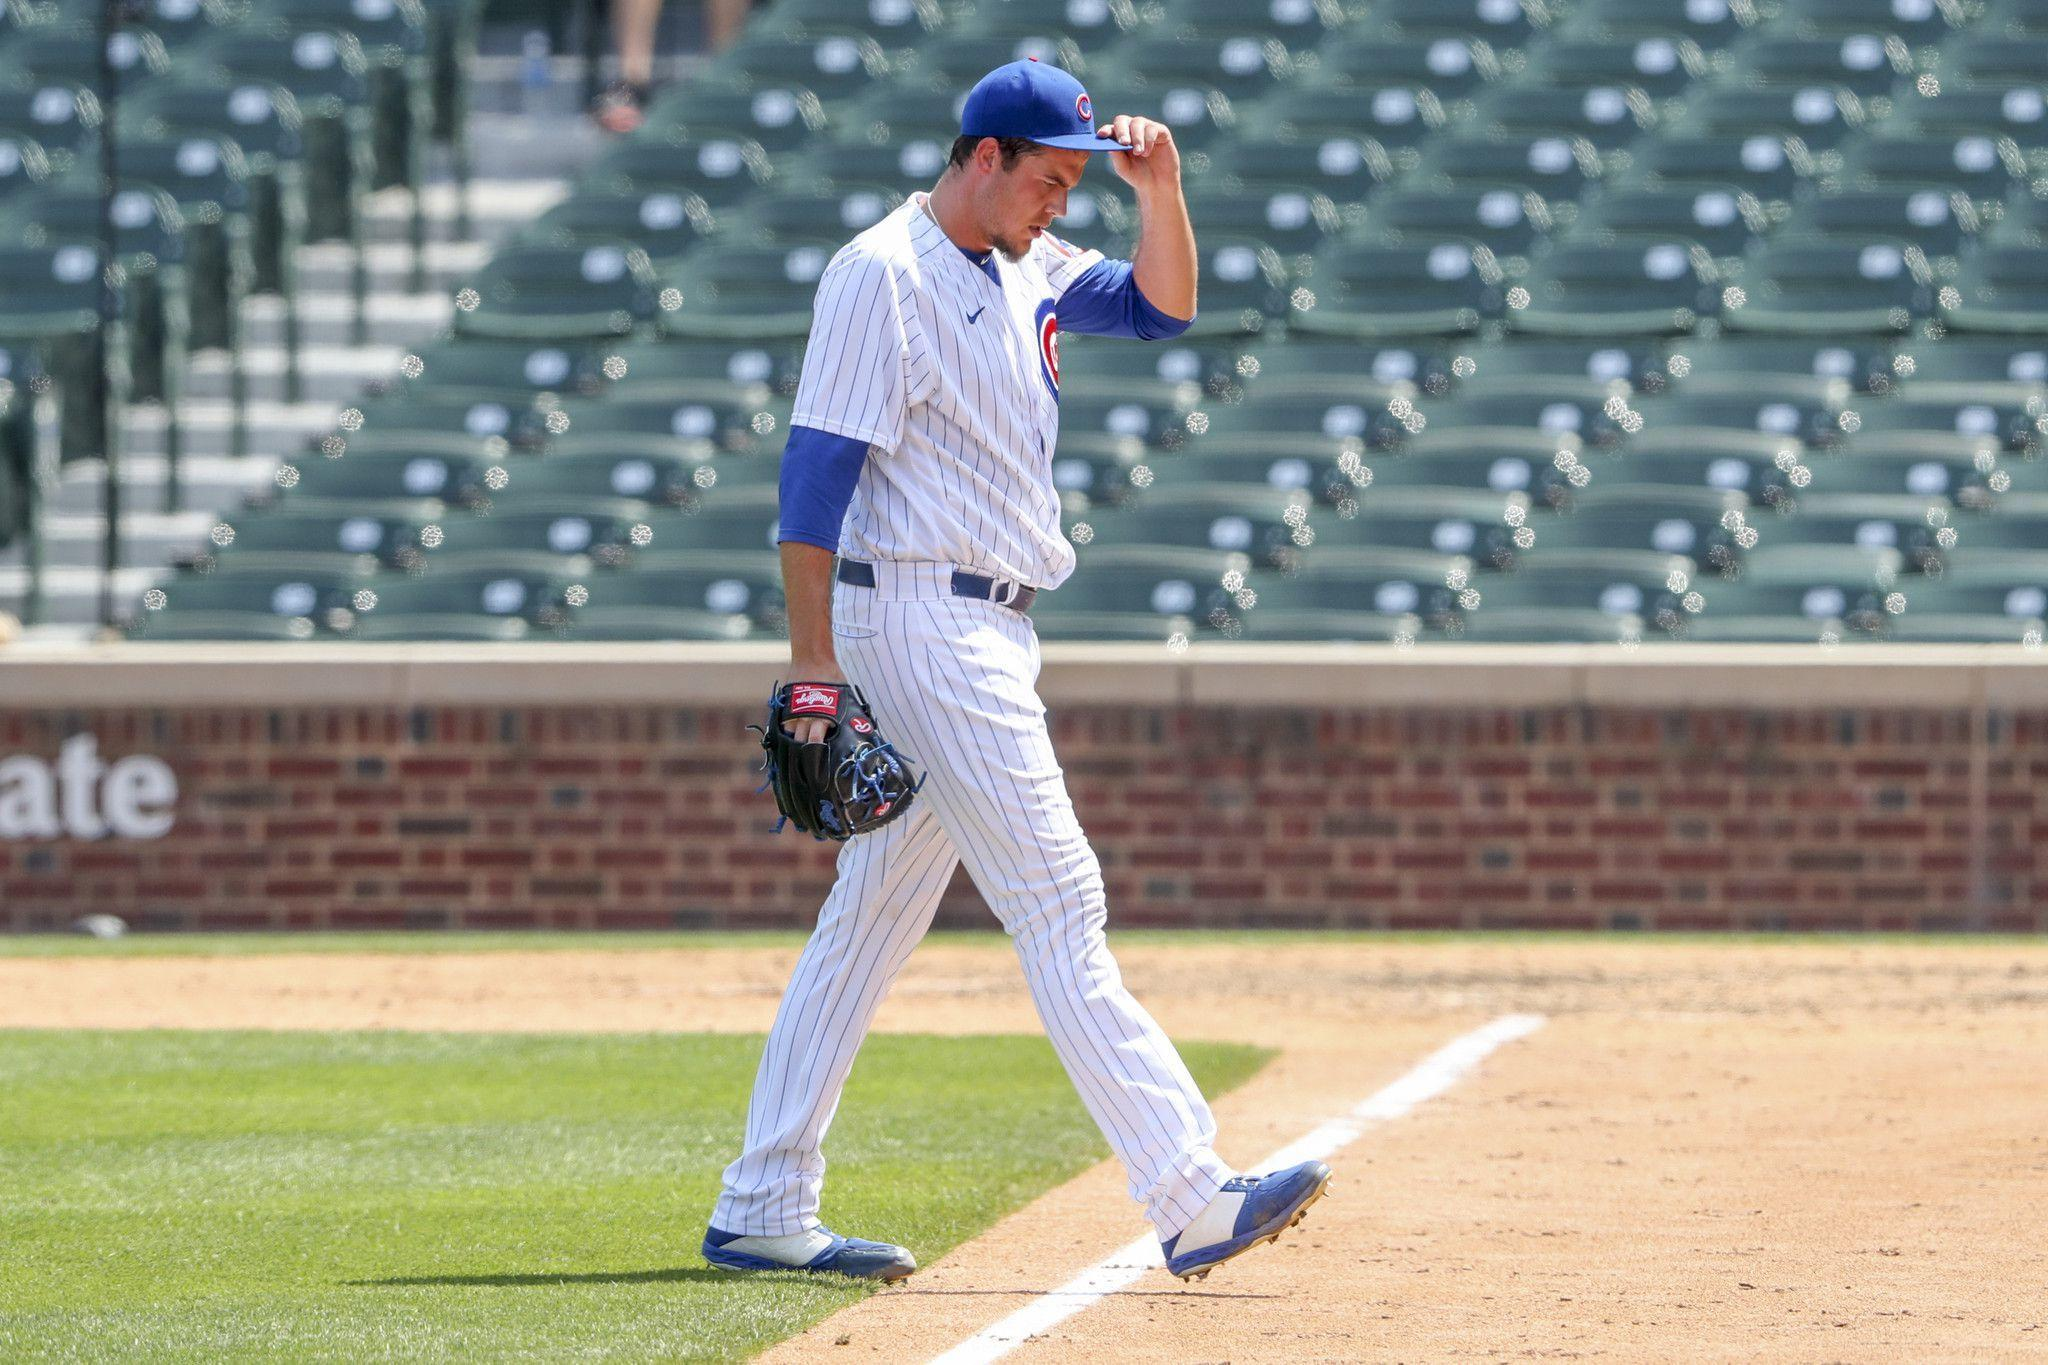 Cubs place left-handed reliever Brad Wieck on the 10-day injured list and promote Ryan Tepera from the taxi squad